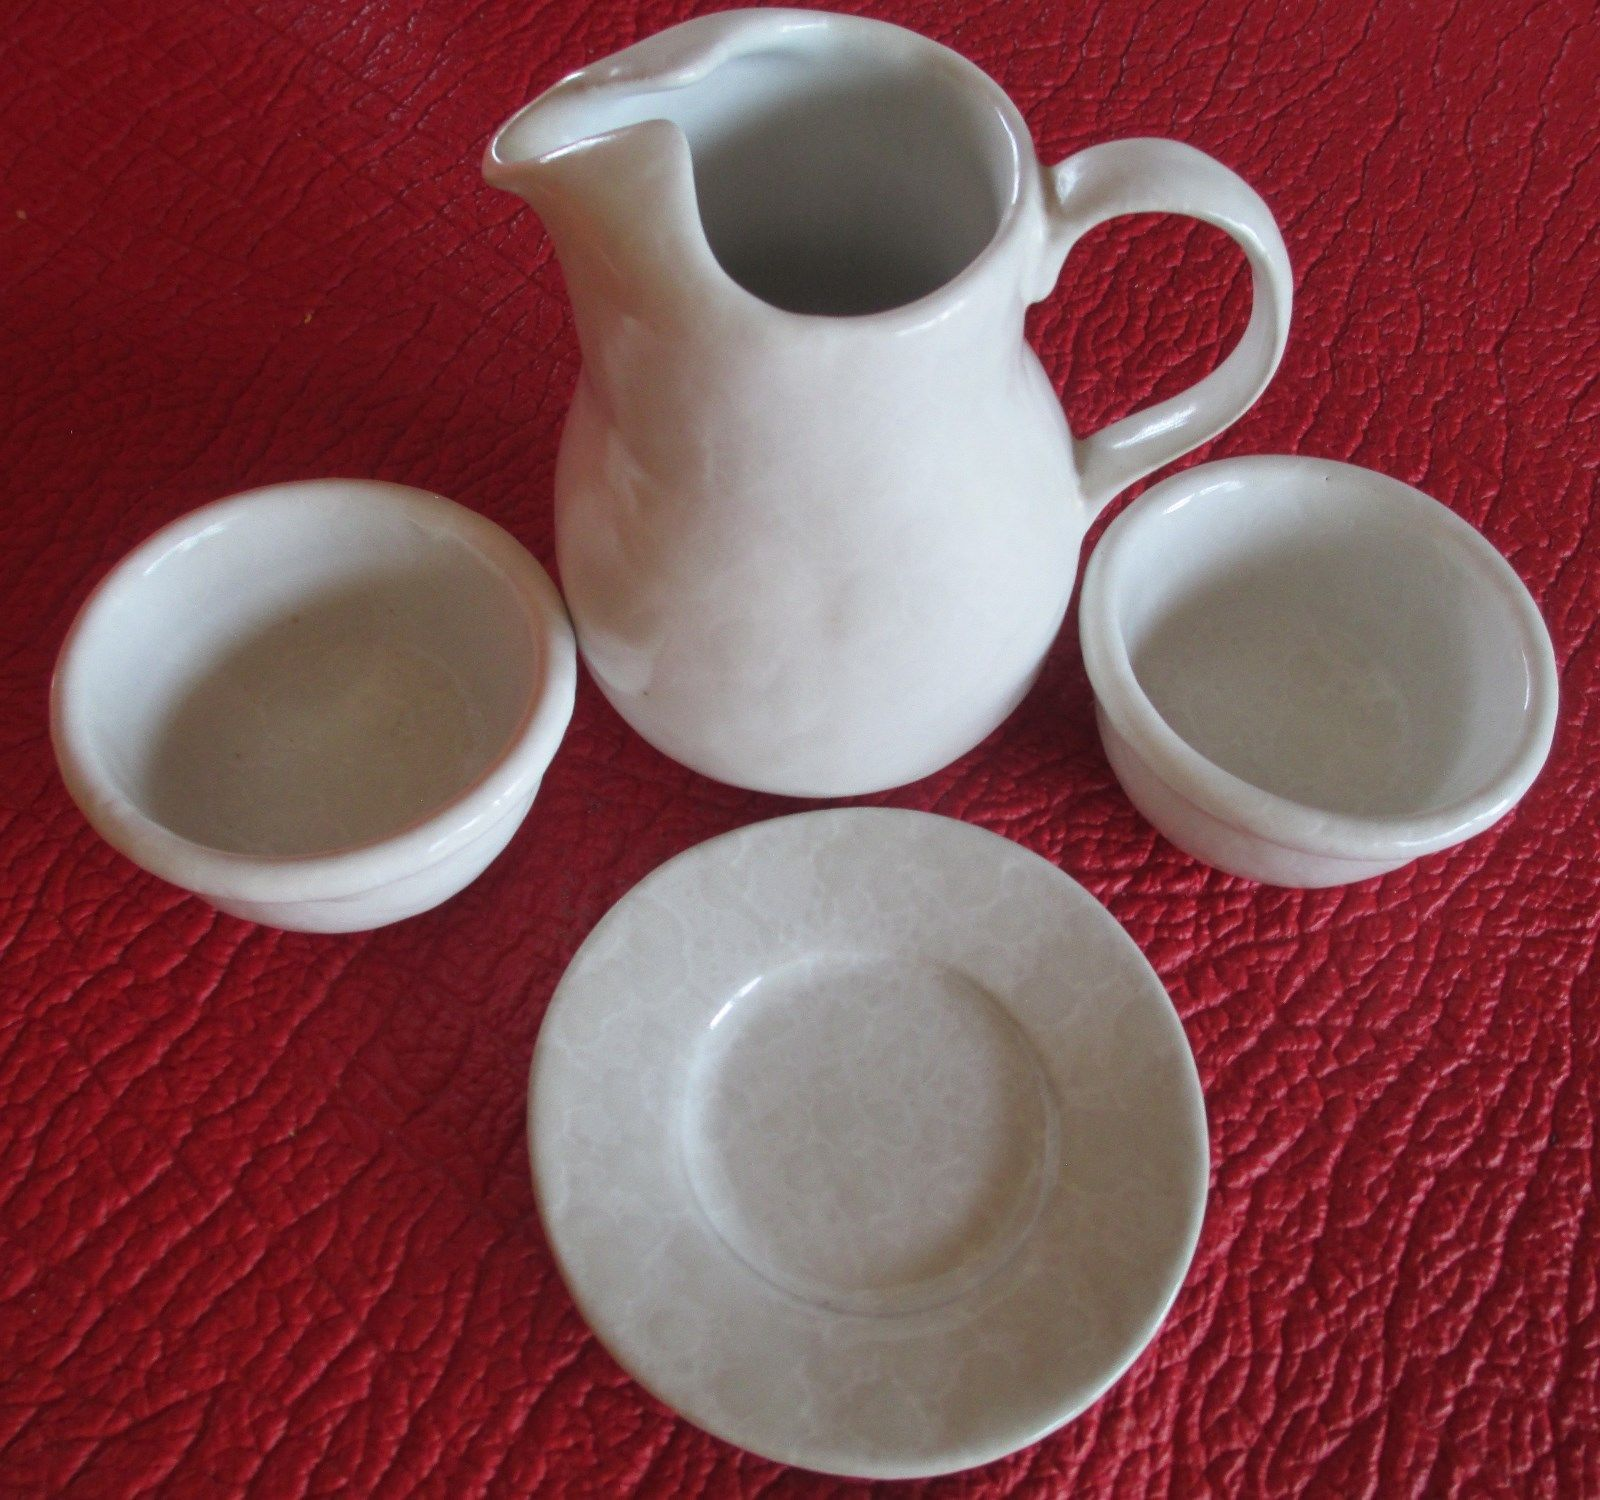 Jug, dishes, and saucer